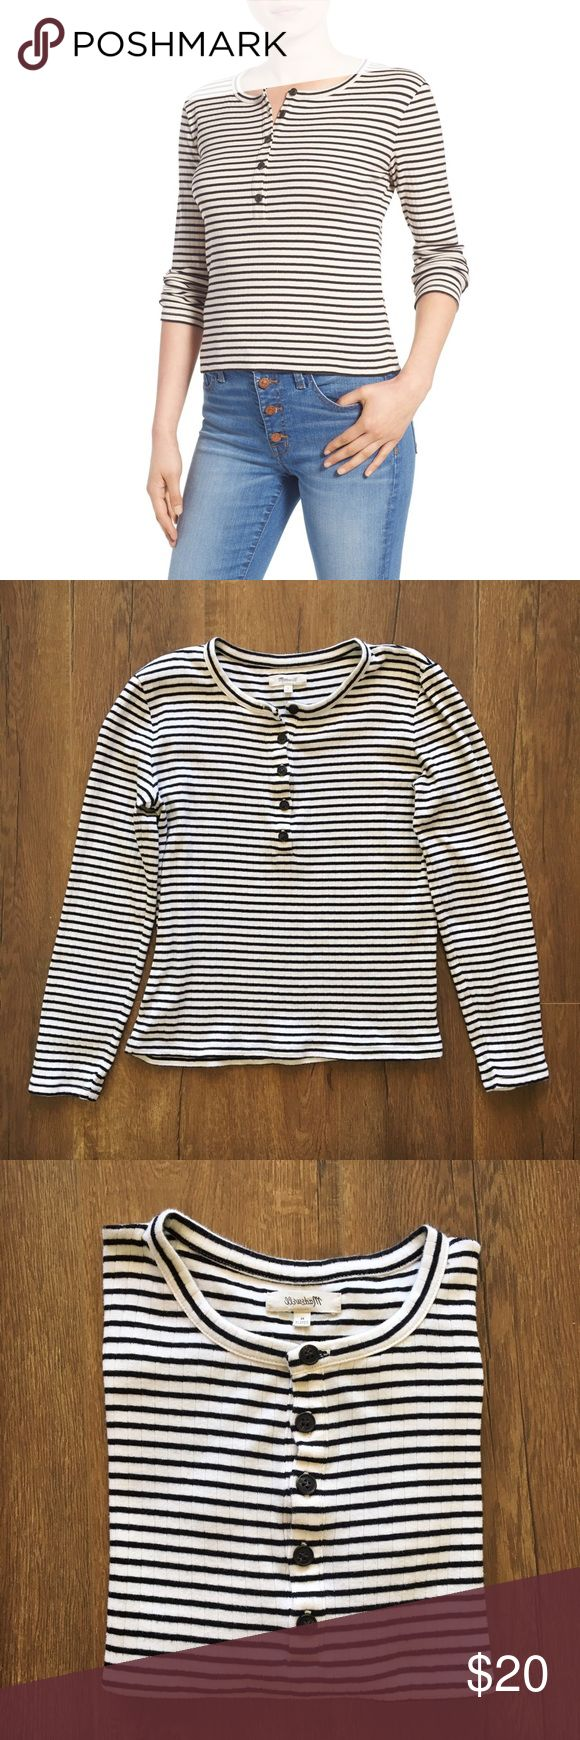 Stripped Henley Top from Madewell White & Black Striped Henley Tee From Madewell. Size M | Cotton. Super soft and versatile and CUTE! Discount off bundles ;) Madewell Tops Tees - Long Sleeve